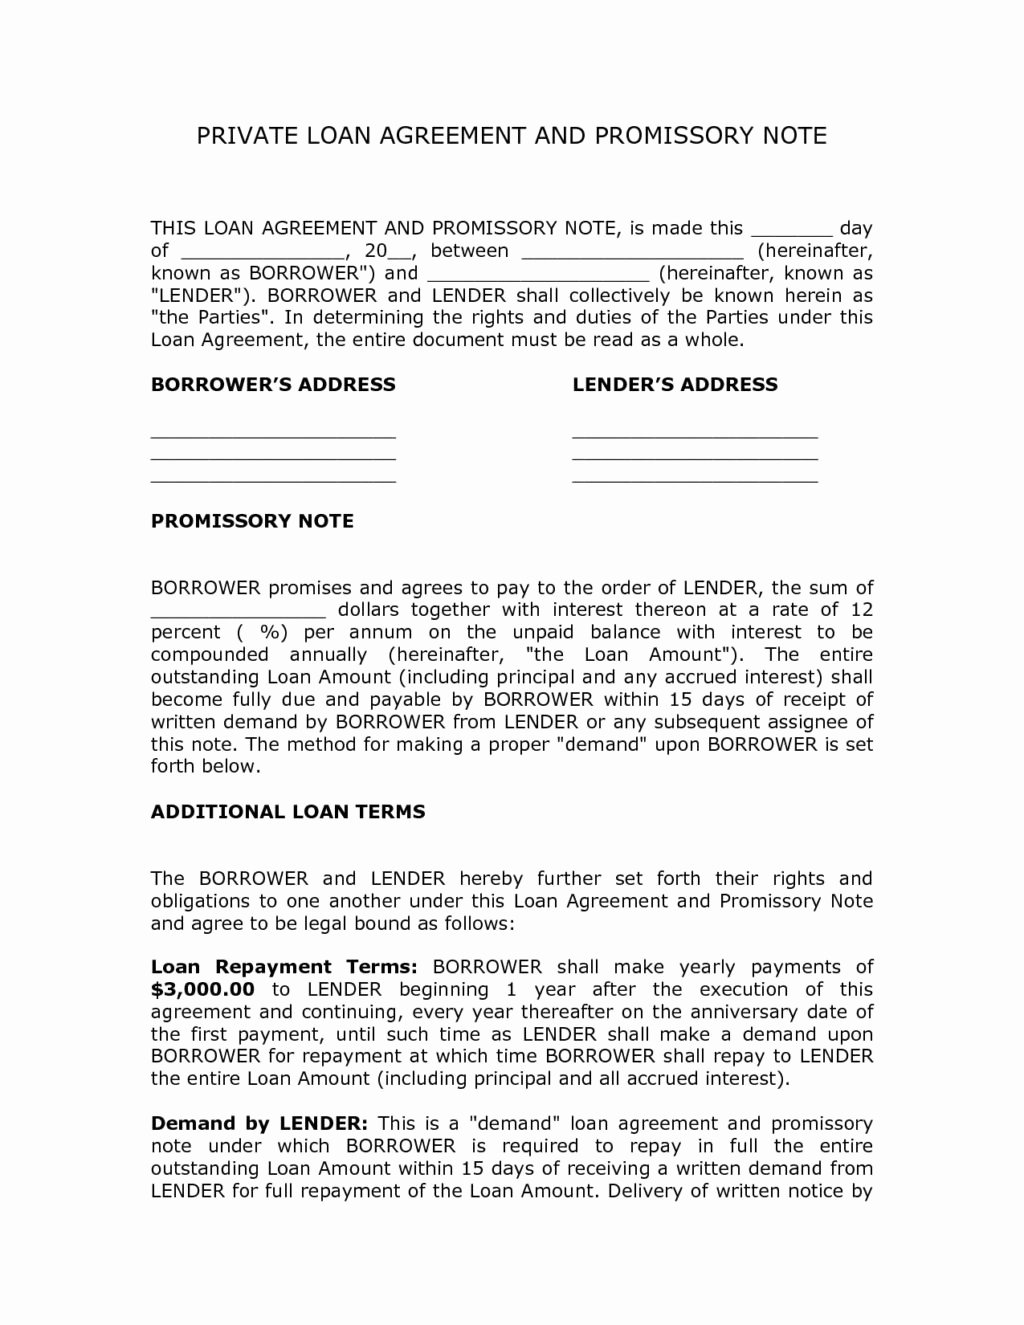 Personal Loan Promissory Note Template Fresh Private Personal Loan Agreement Contract Template and